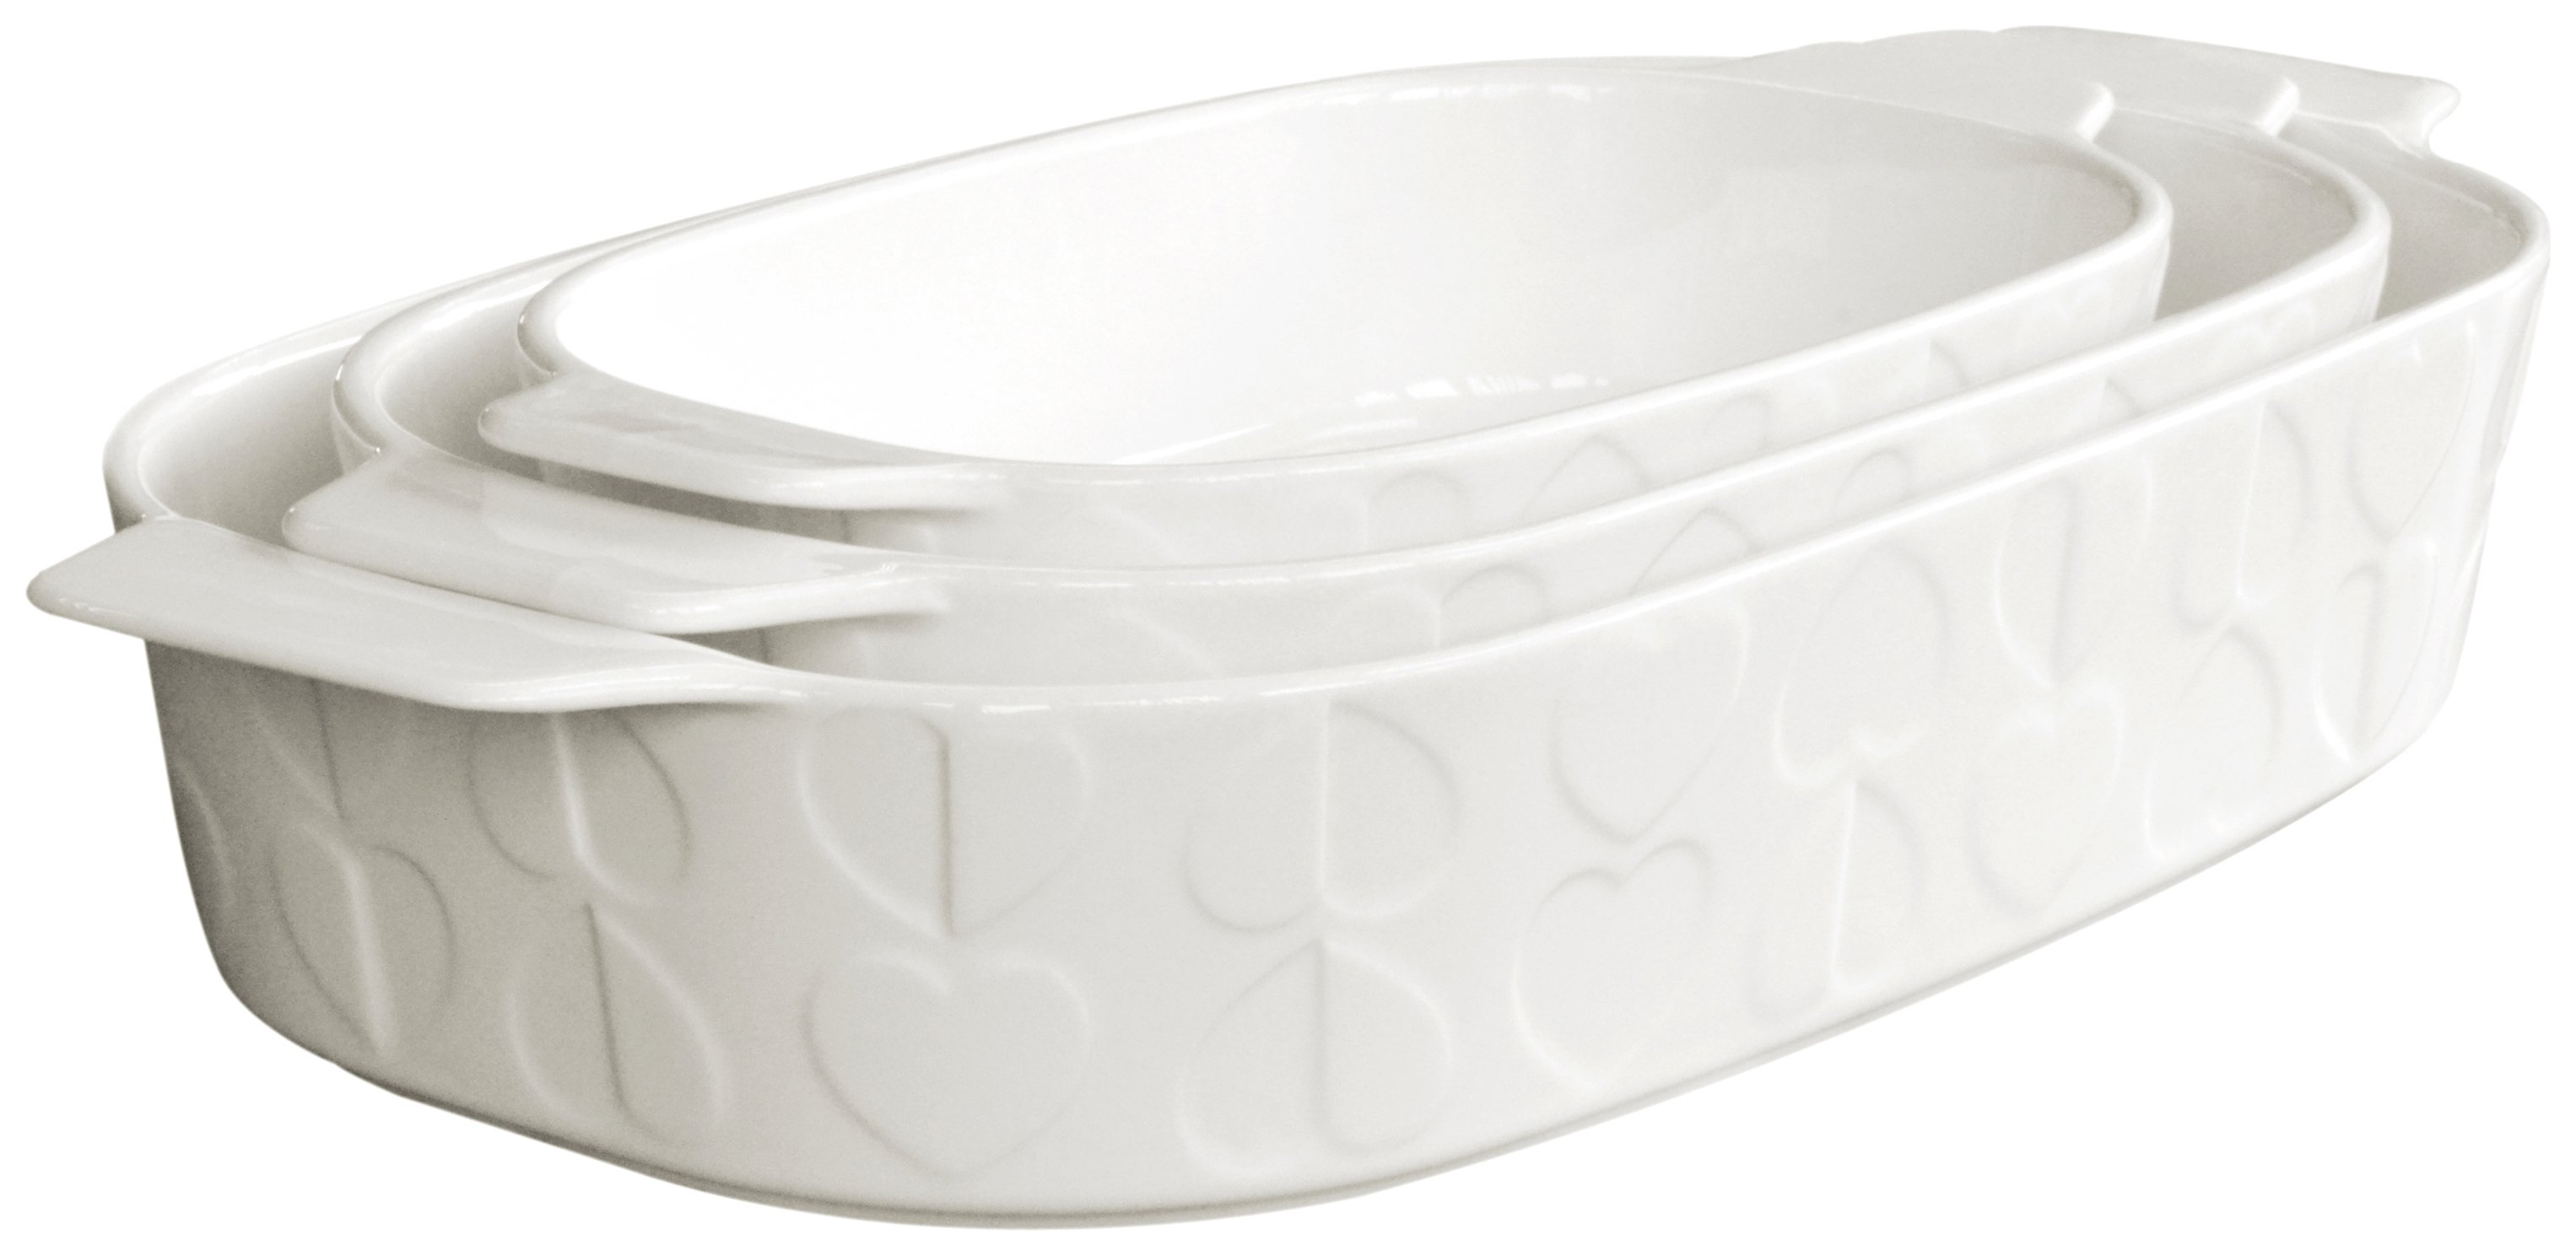 Image of Beau and Elliot - Embossed Oven Dishes - Set of 3